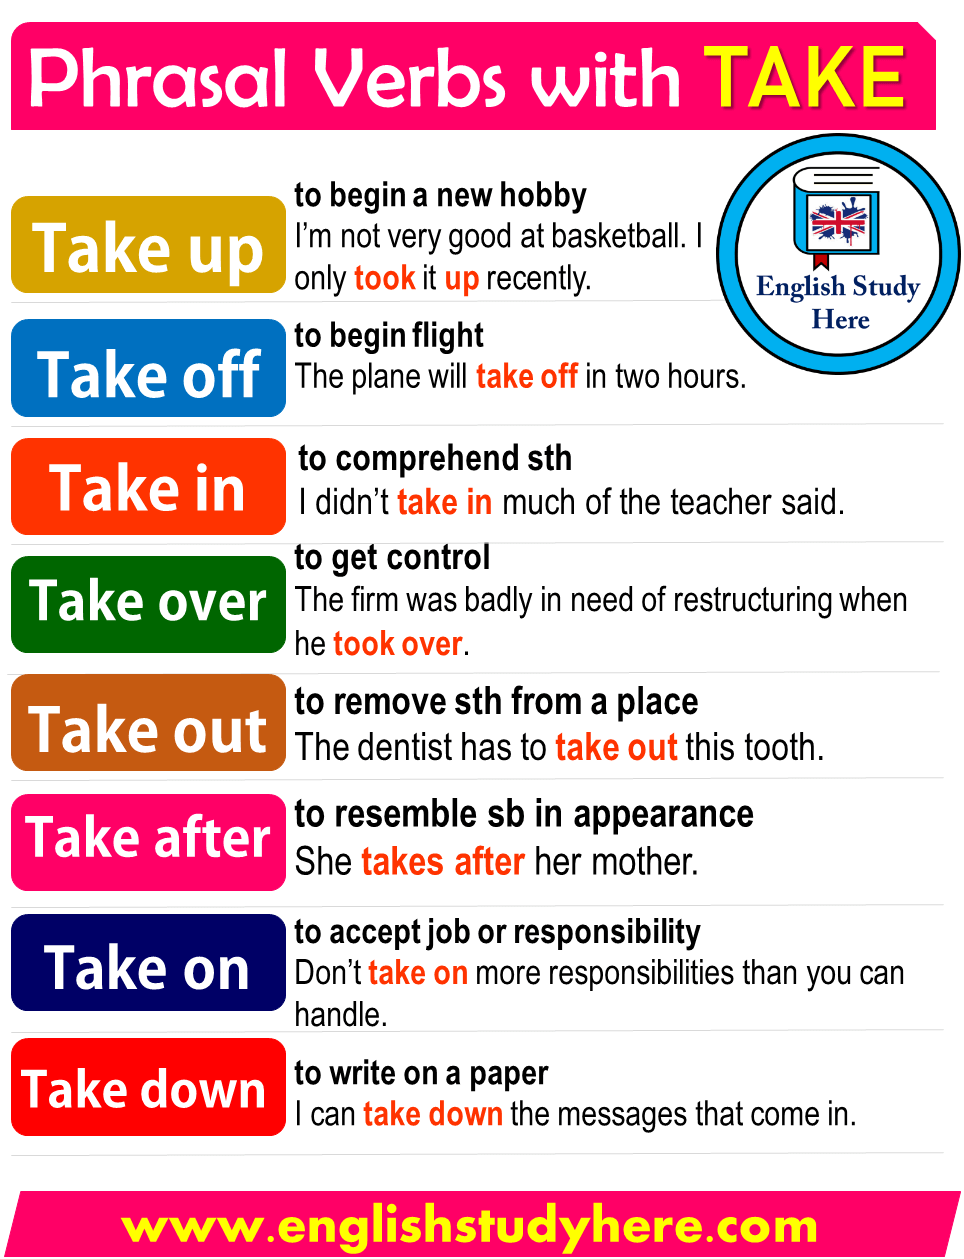 Phrasal Verbs With TAKE In English English Study Here